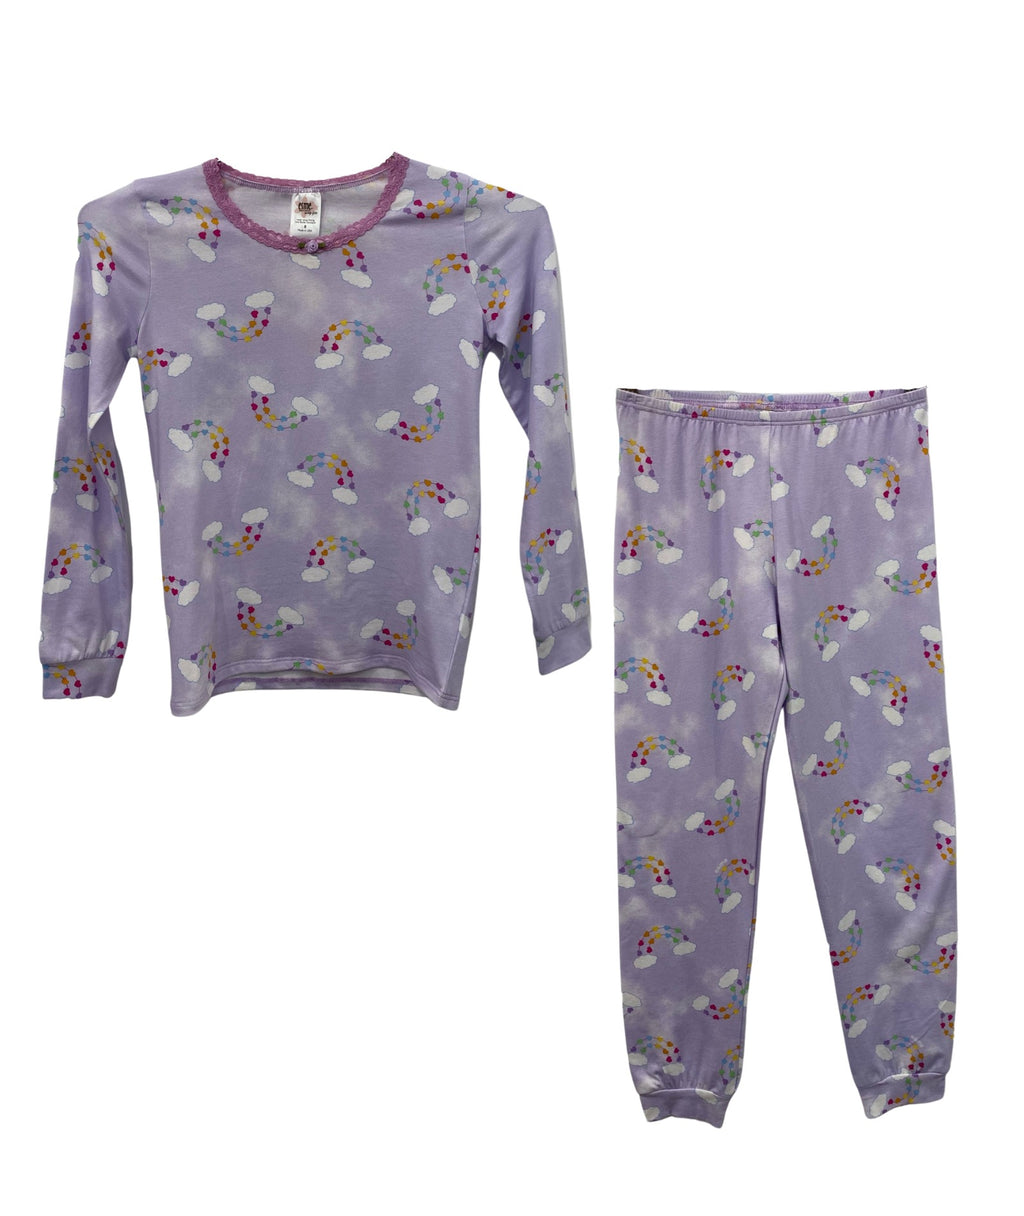 Esme Girls Rainbow Hearts Long Sleeve Top/Leggings